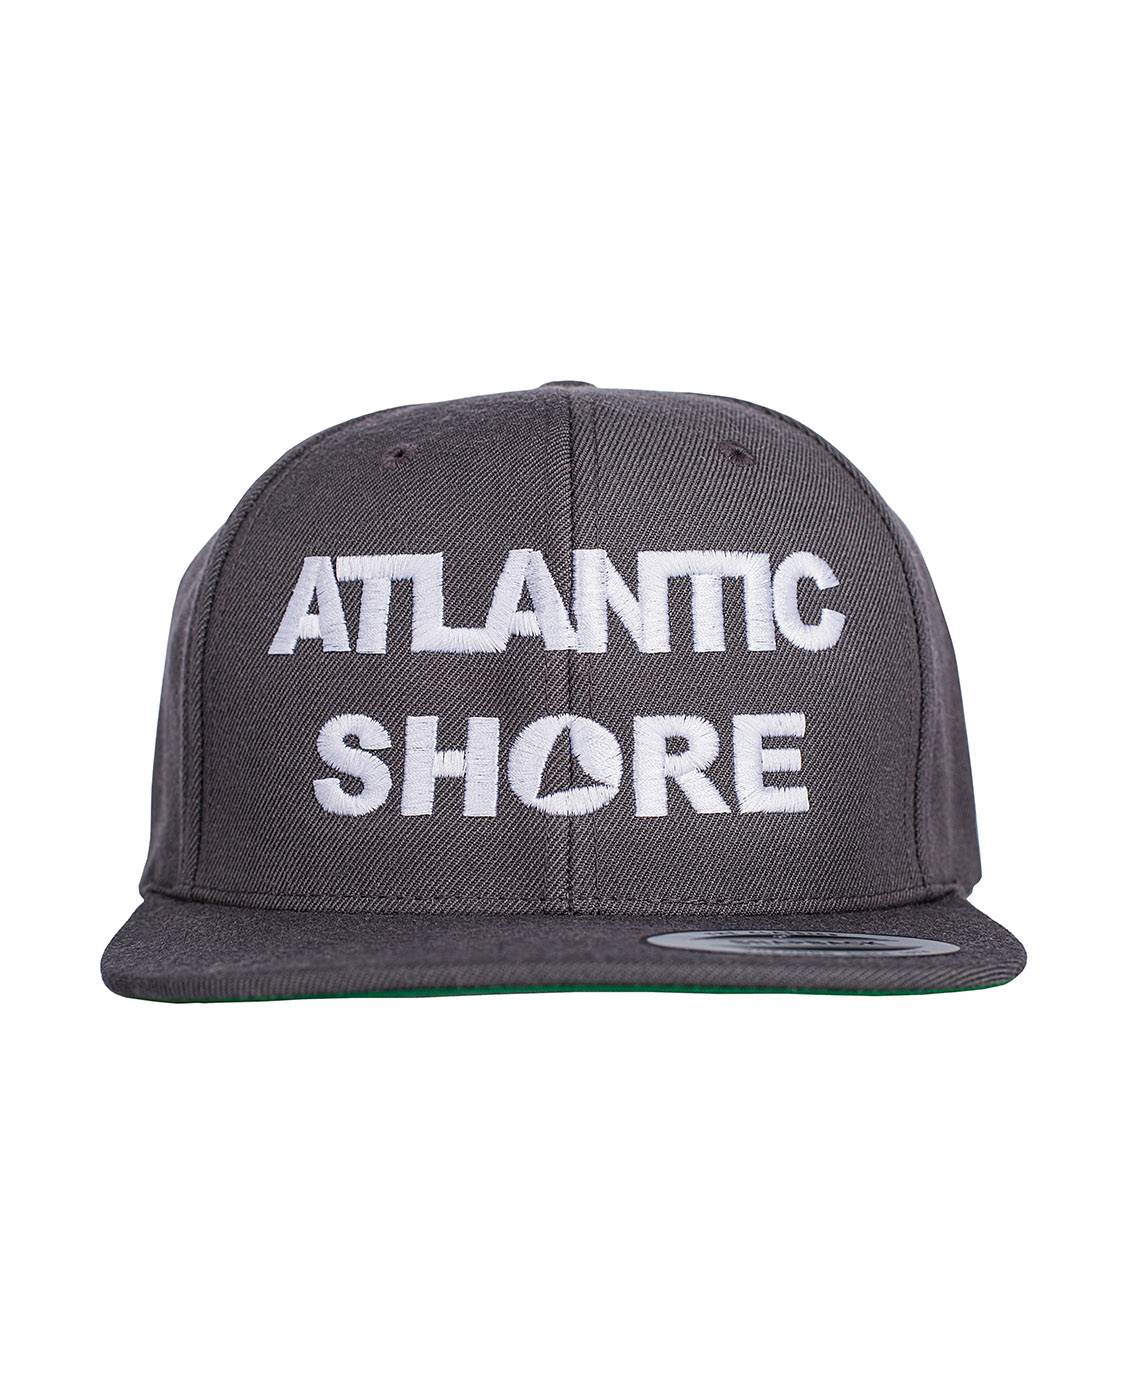 Atlantic Shore | Cap